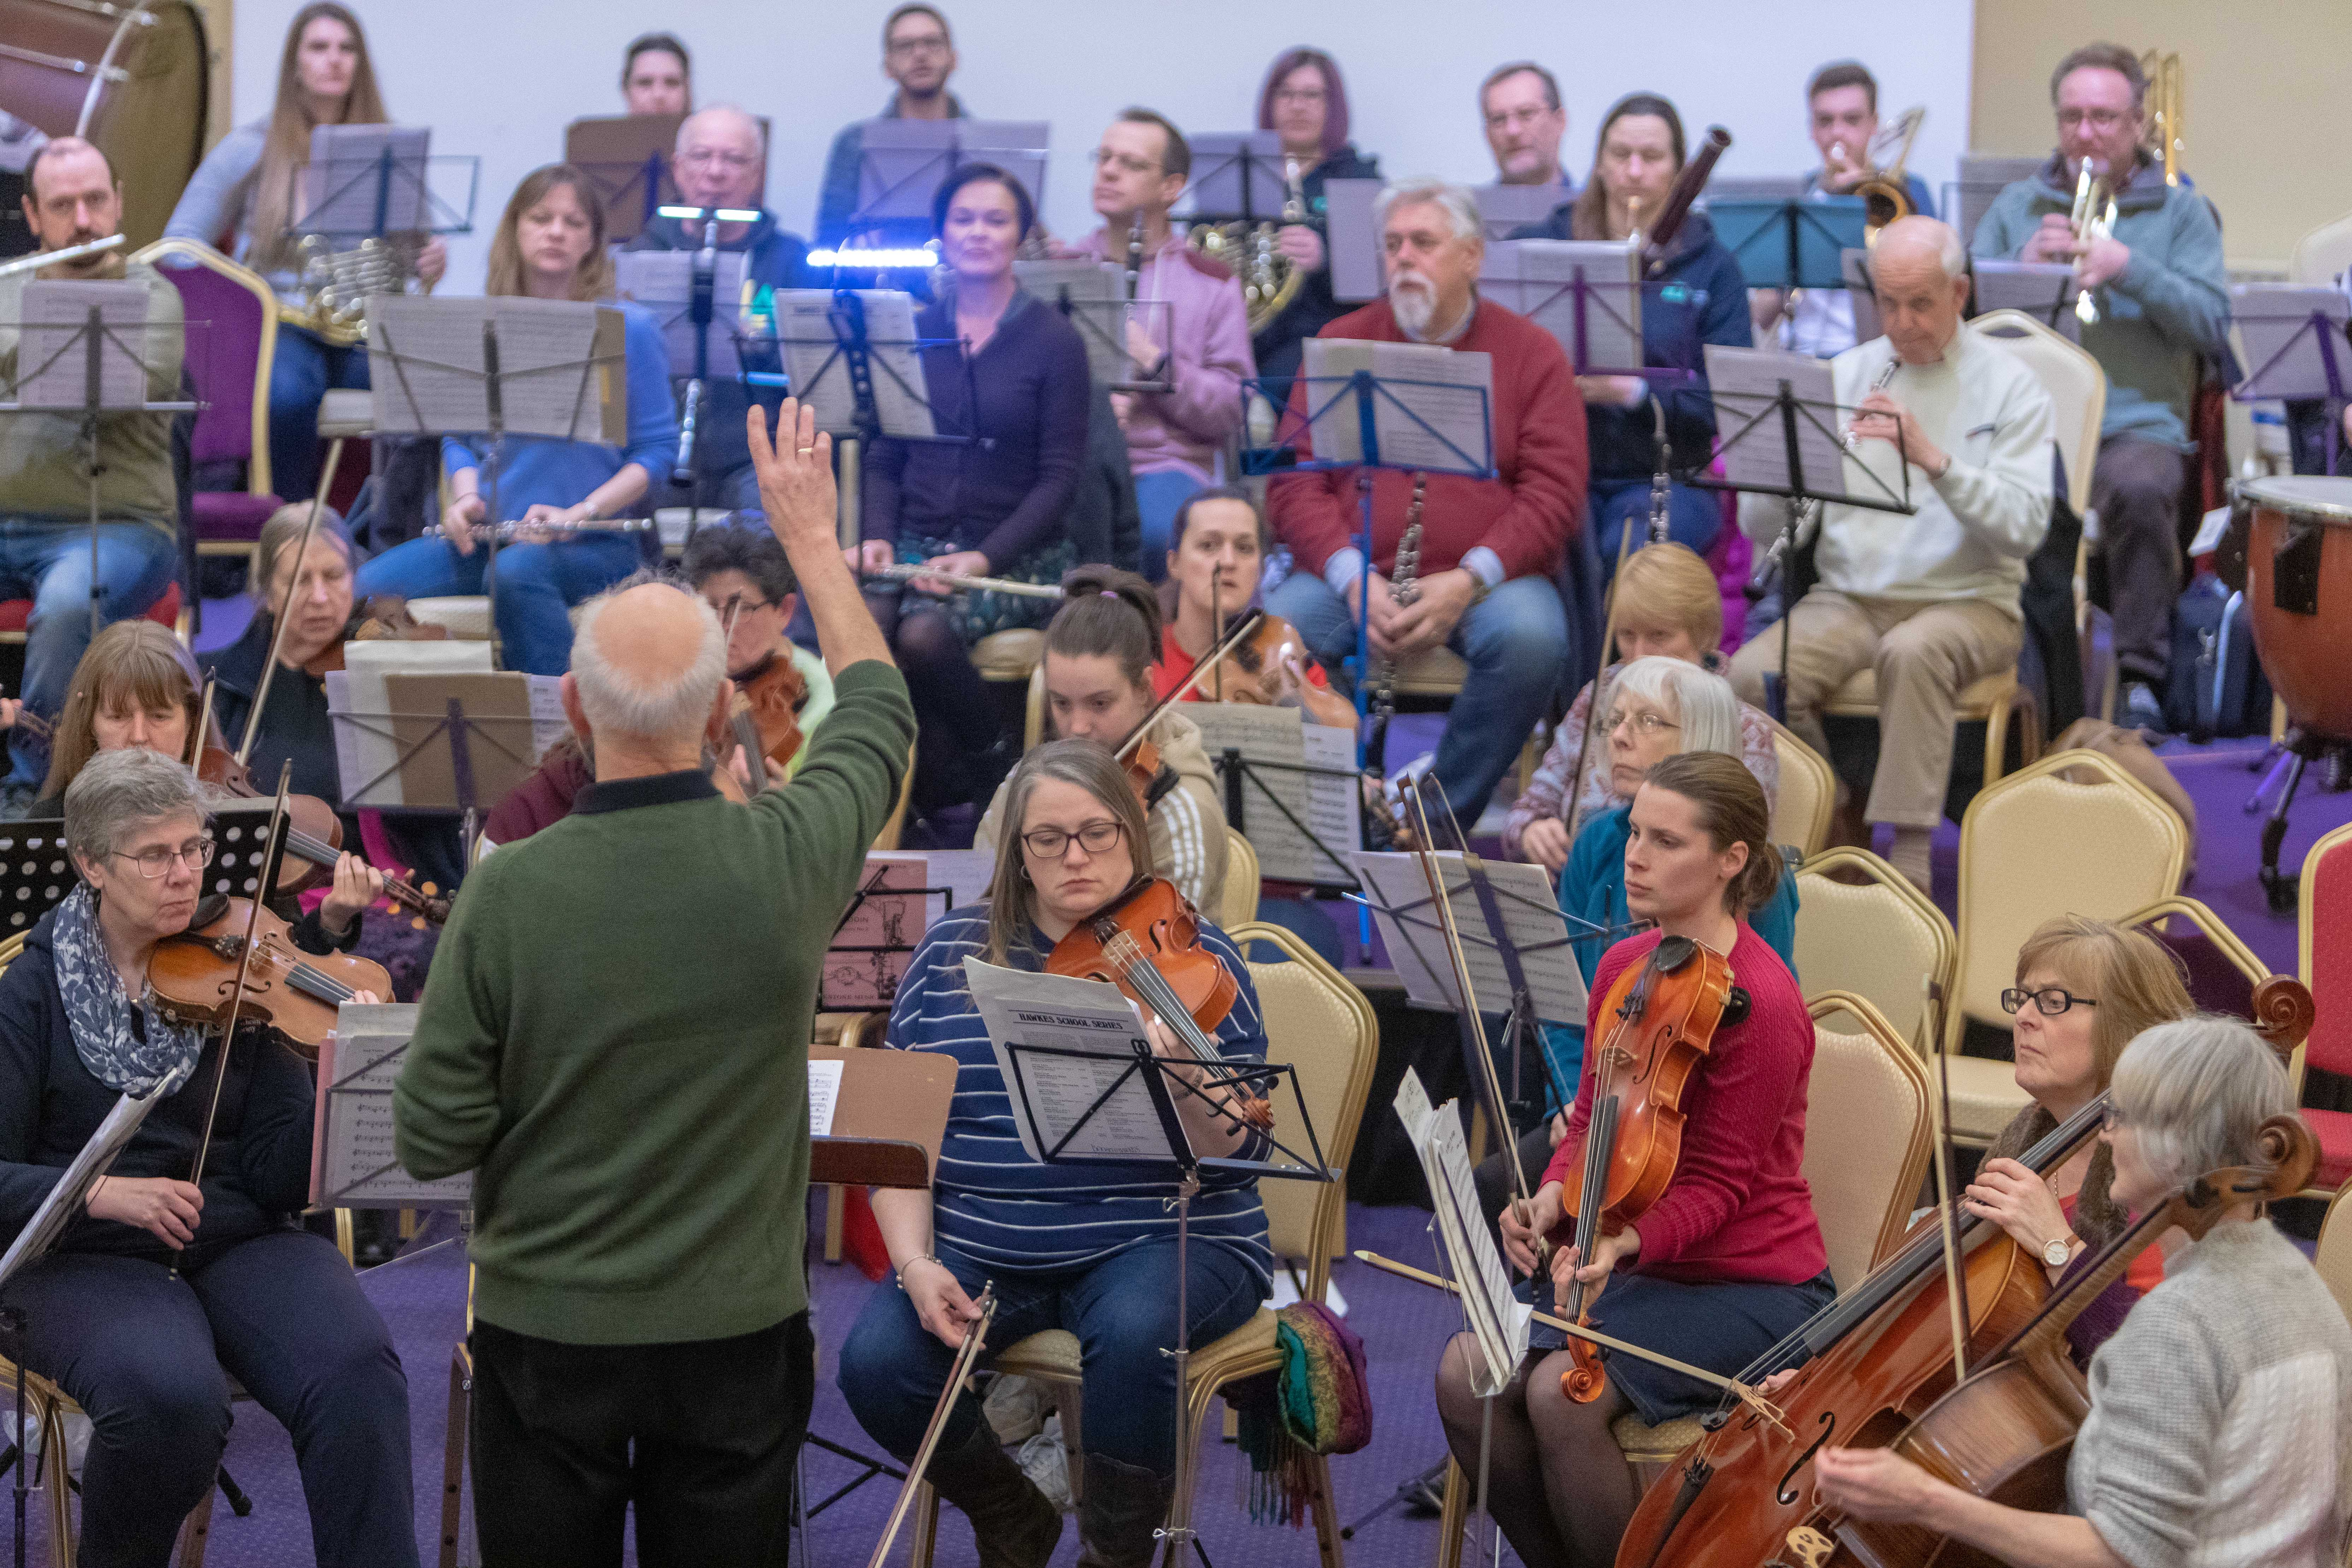 Kirkcaldy Orchestra at practice prior to shows this month.